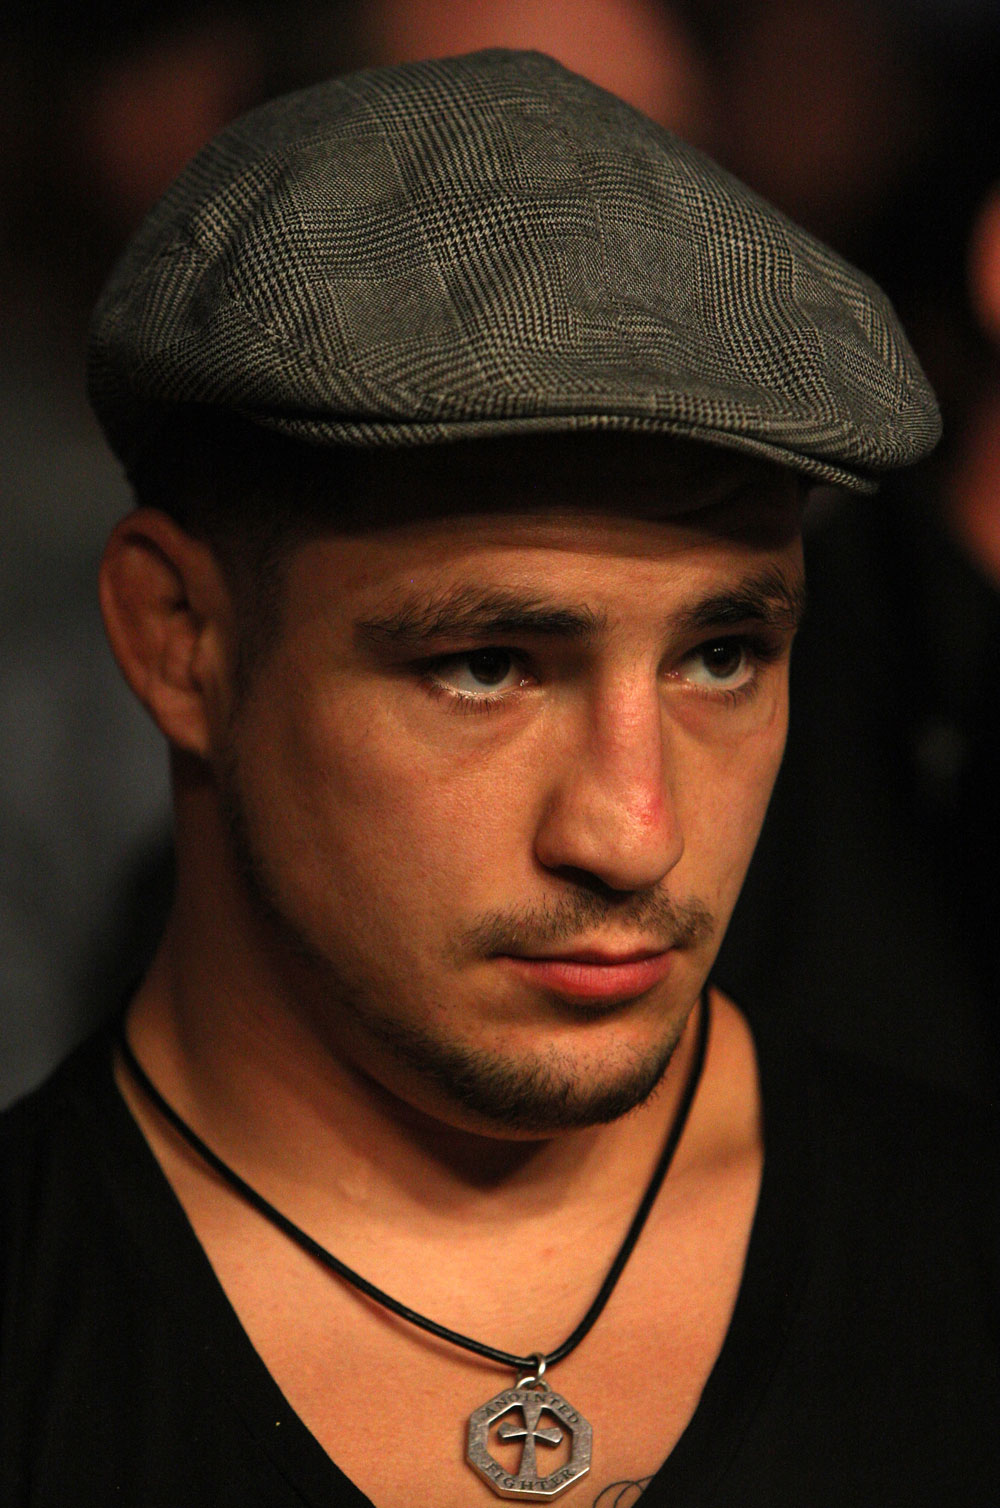 UFC Fighter Diego Sanchez attends UFC136